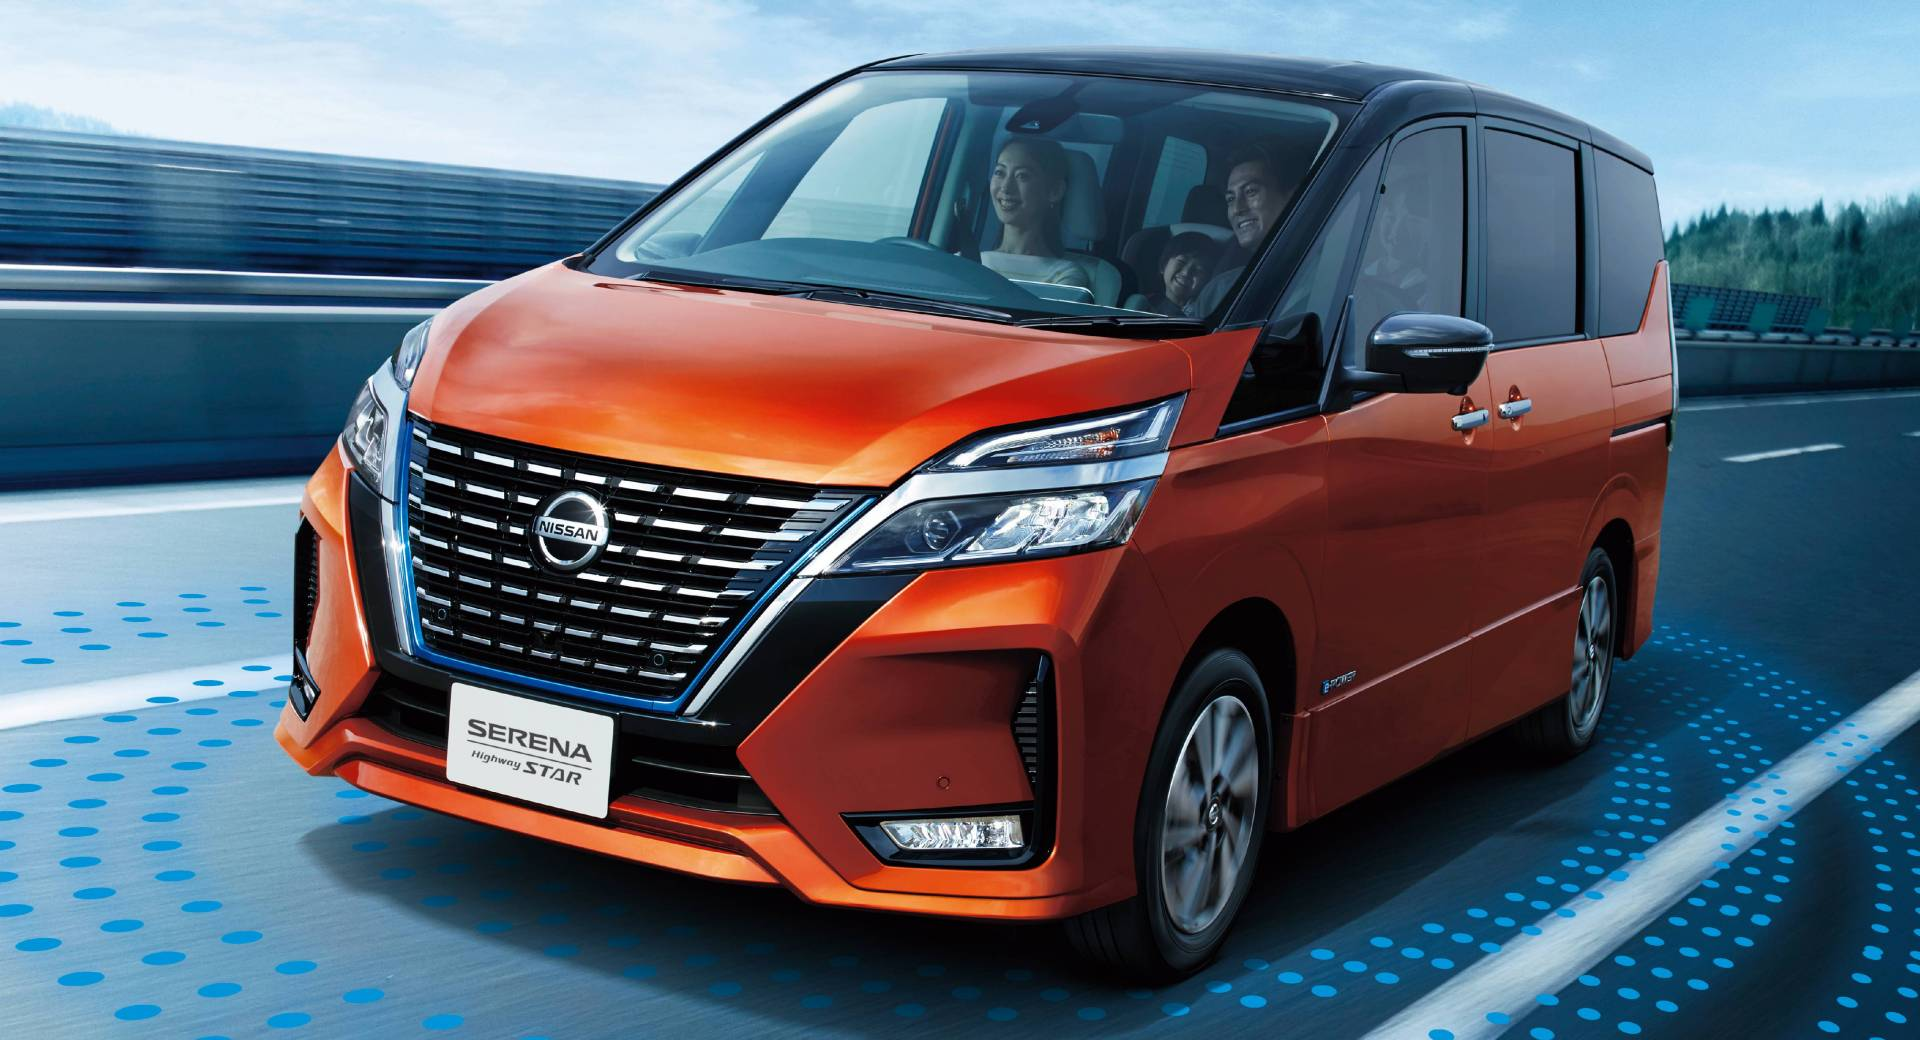 Japan S Facelifted Nissan Serena Becomes Smarter Safer